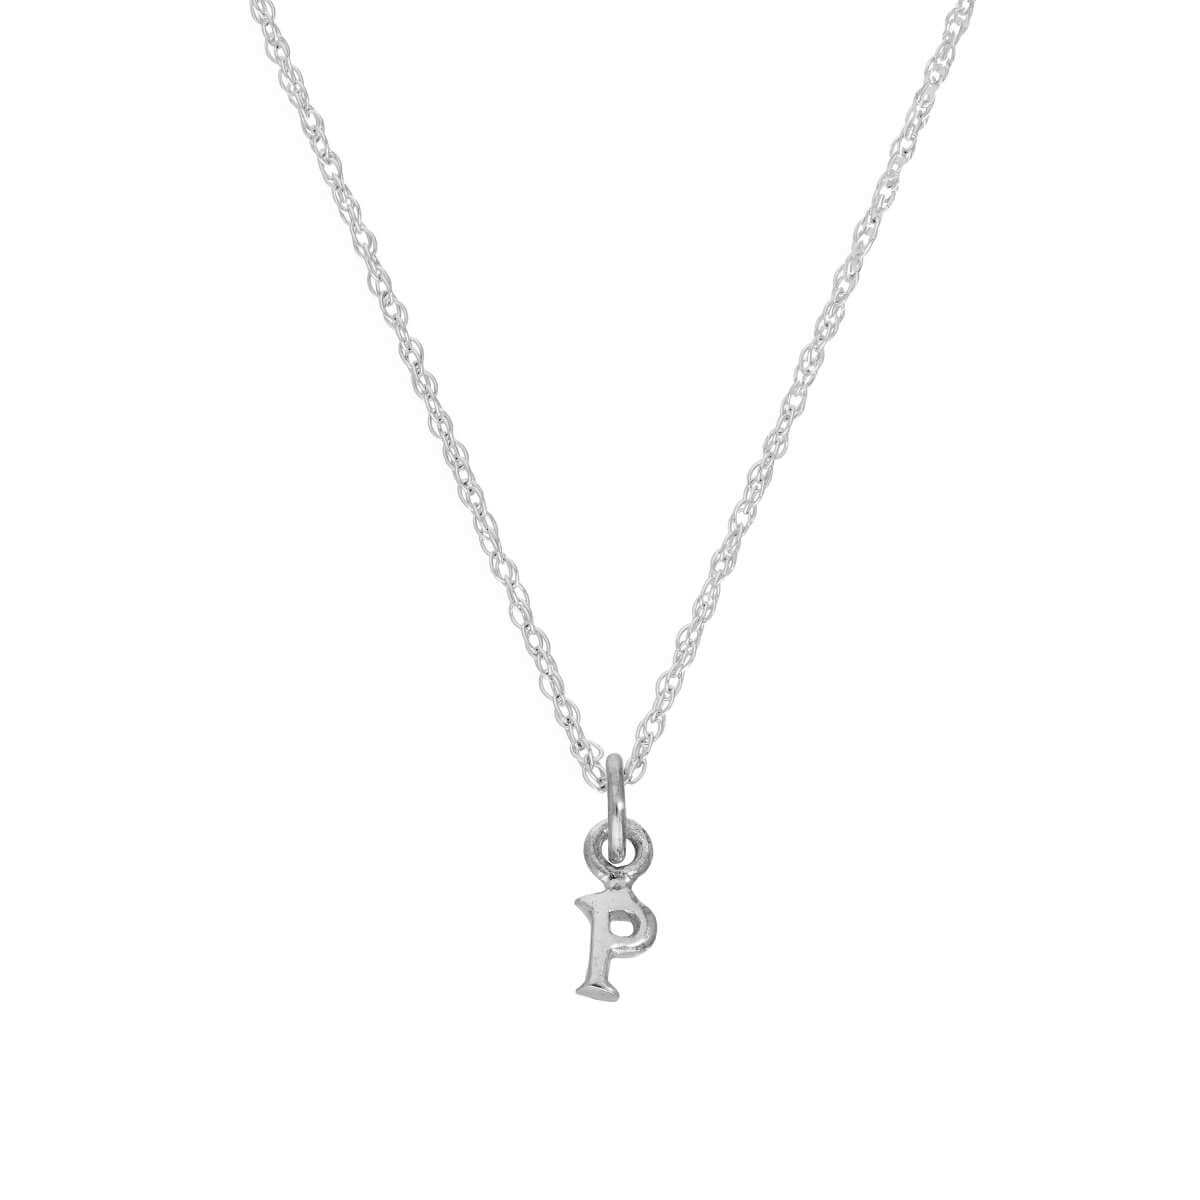 Tiny Sterling Silver Alphabet Letter P Pendant Necklace 14 - 22 Inches